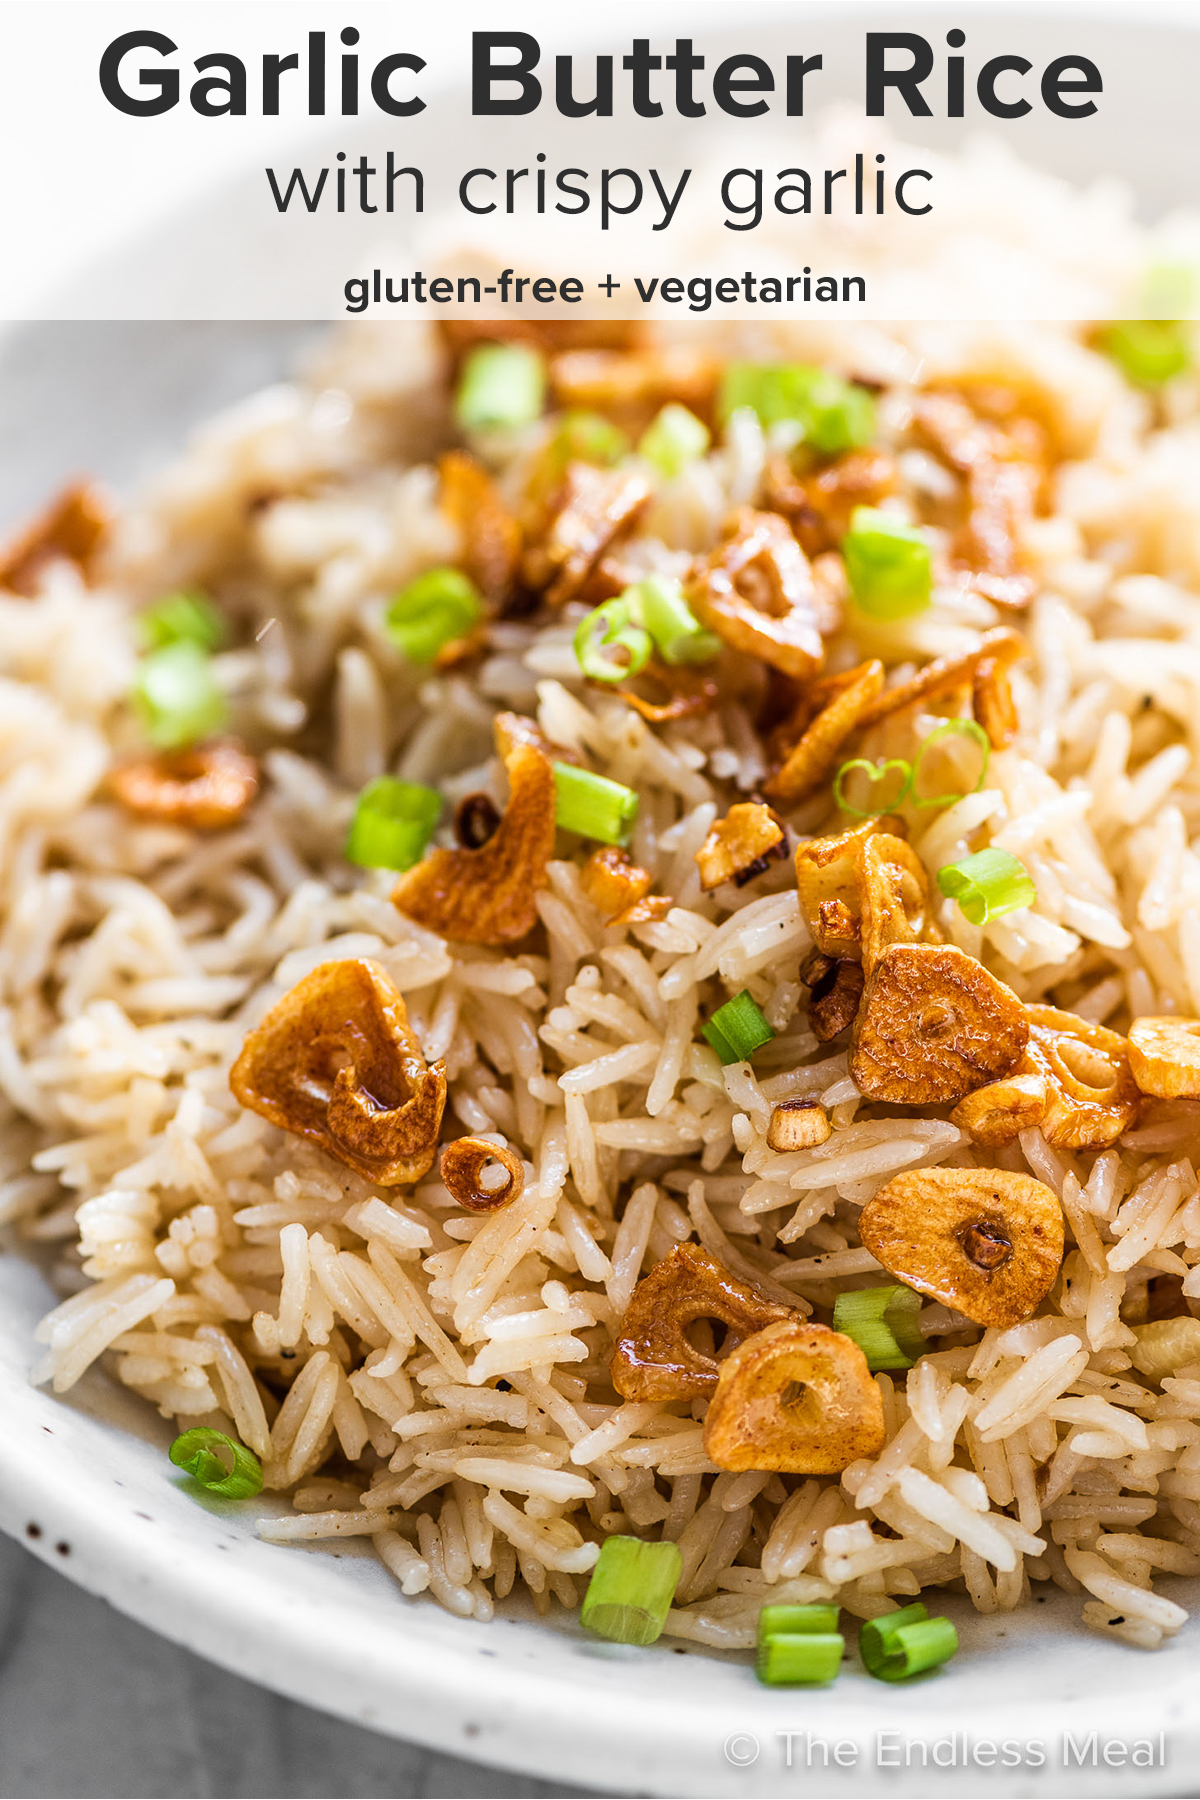 Garlic butter rice in a serving dish topped with crispy garlic and the recipe title on top of the picture.